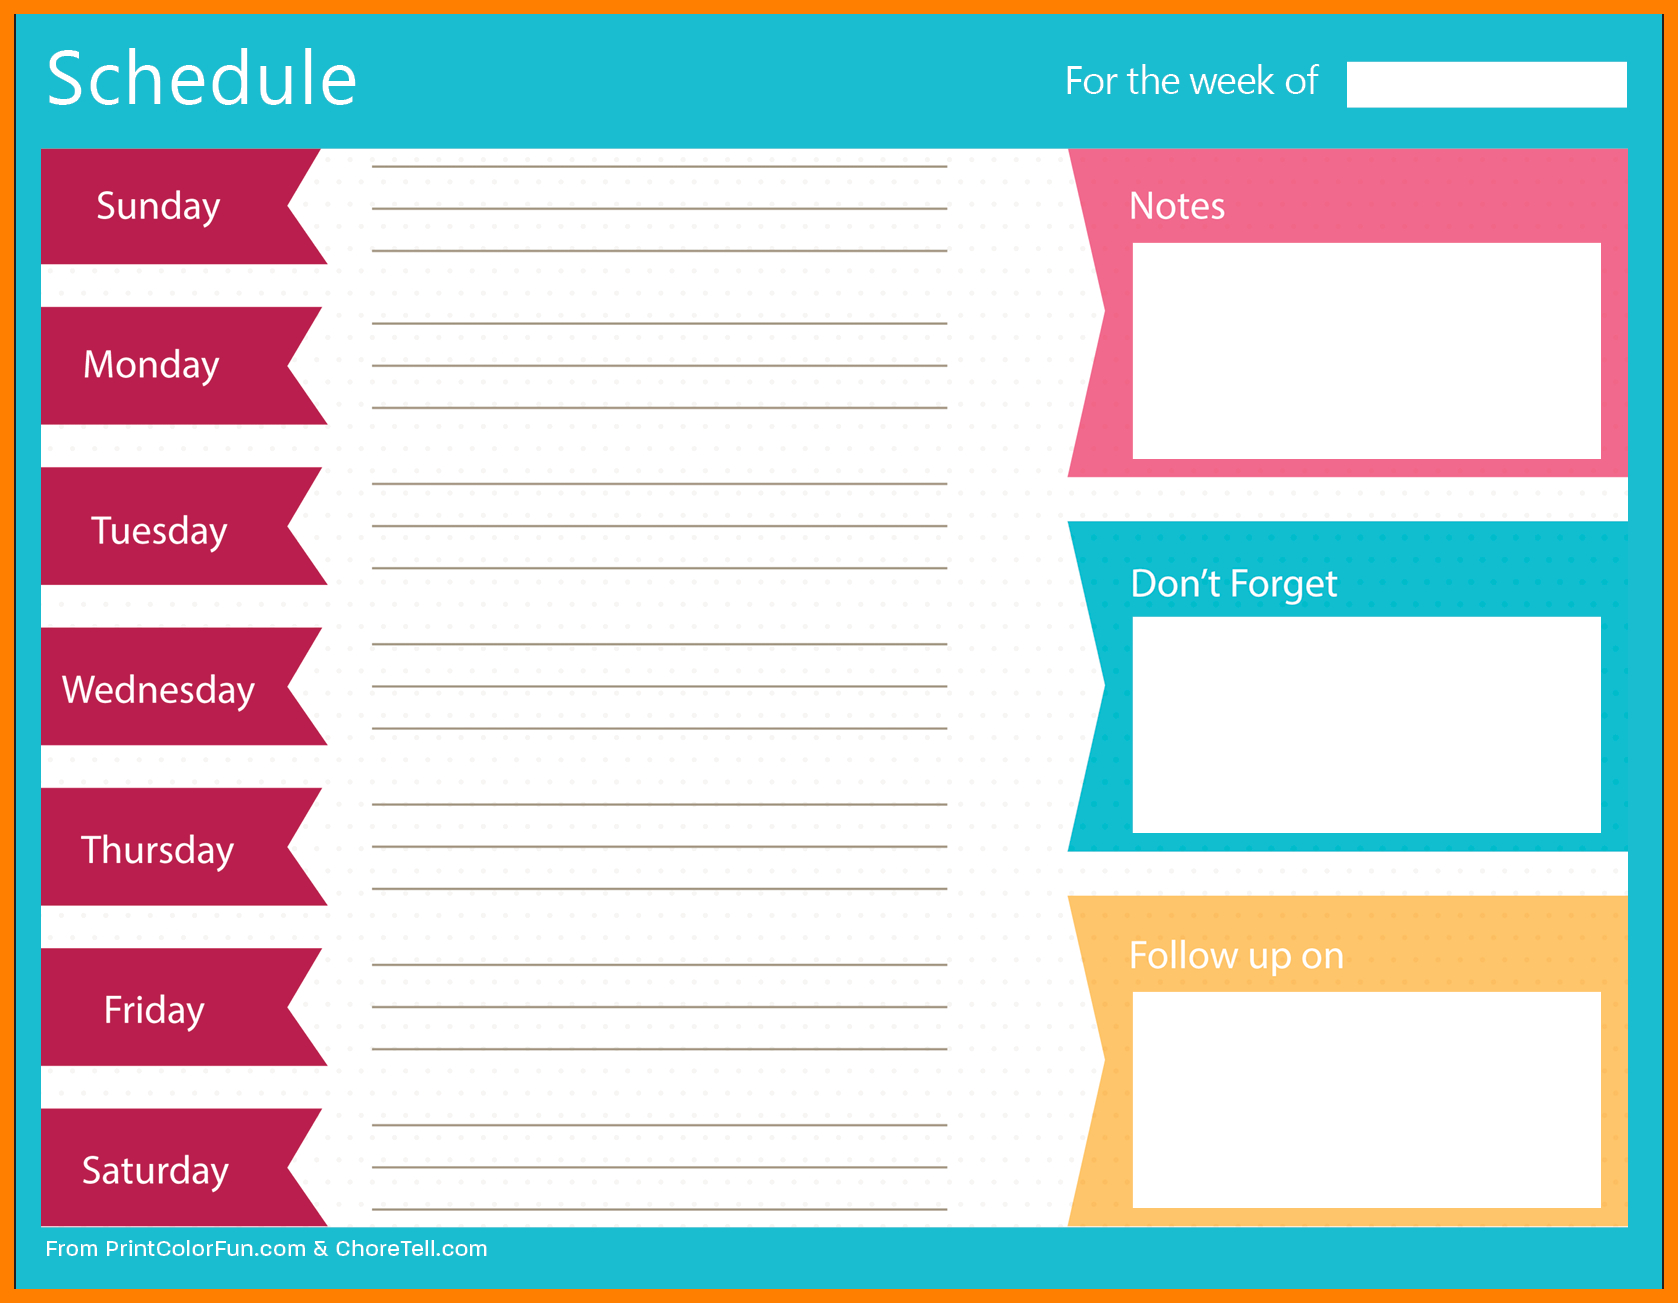 5+ Free Weekly Schedule Printable | Marlows Jewellers with regard to Free Weekly Schedule